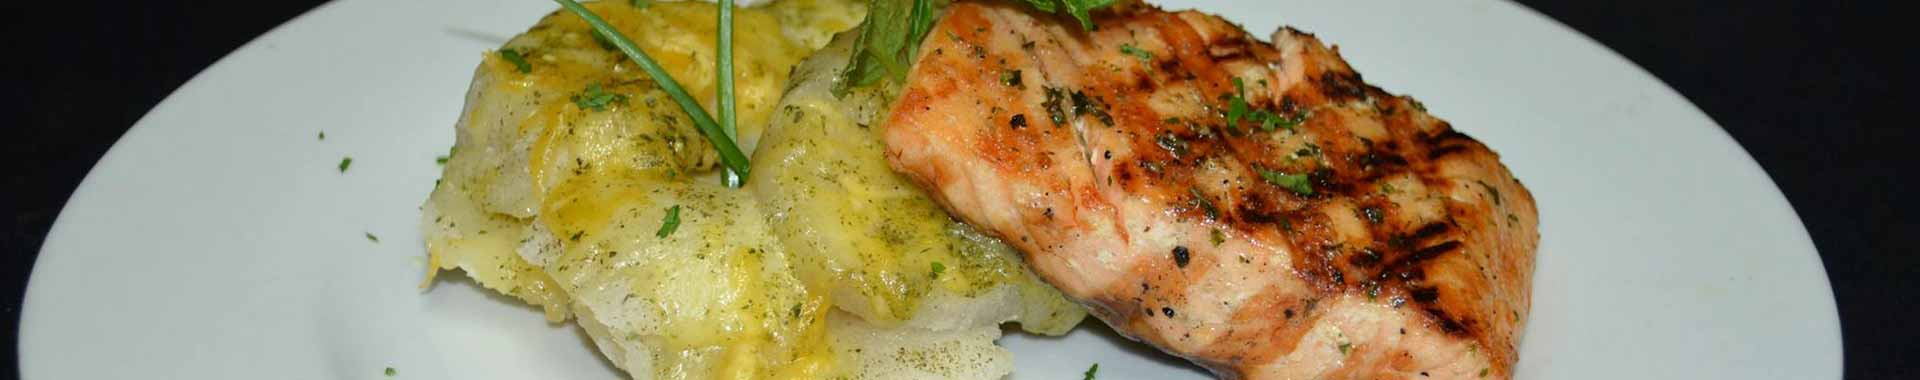 salmon Promotions agueda restaurant